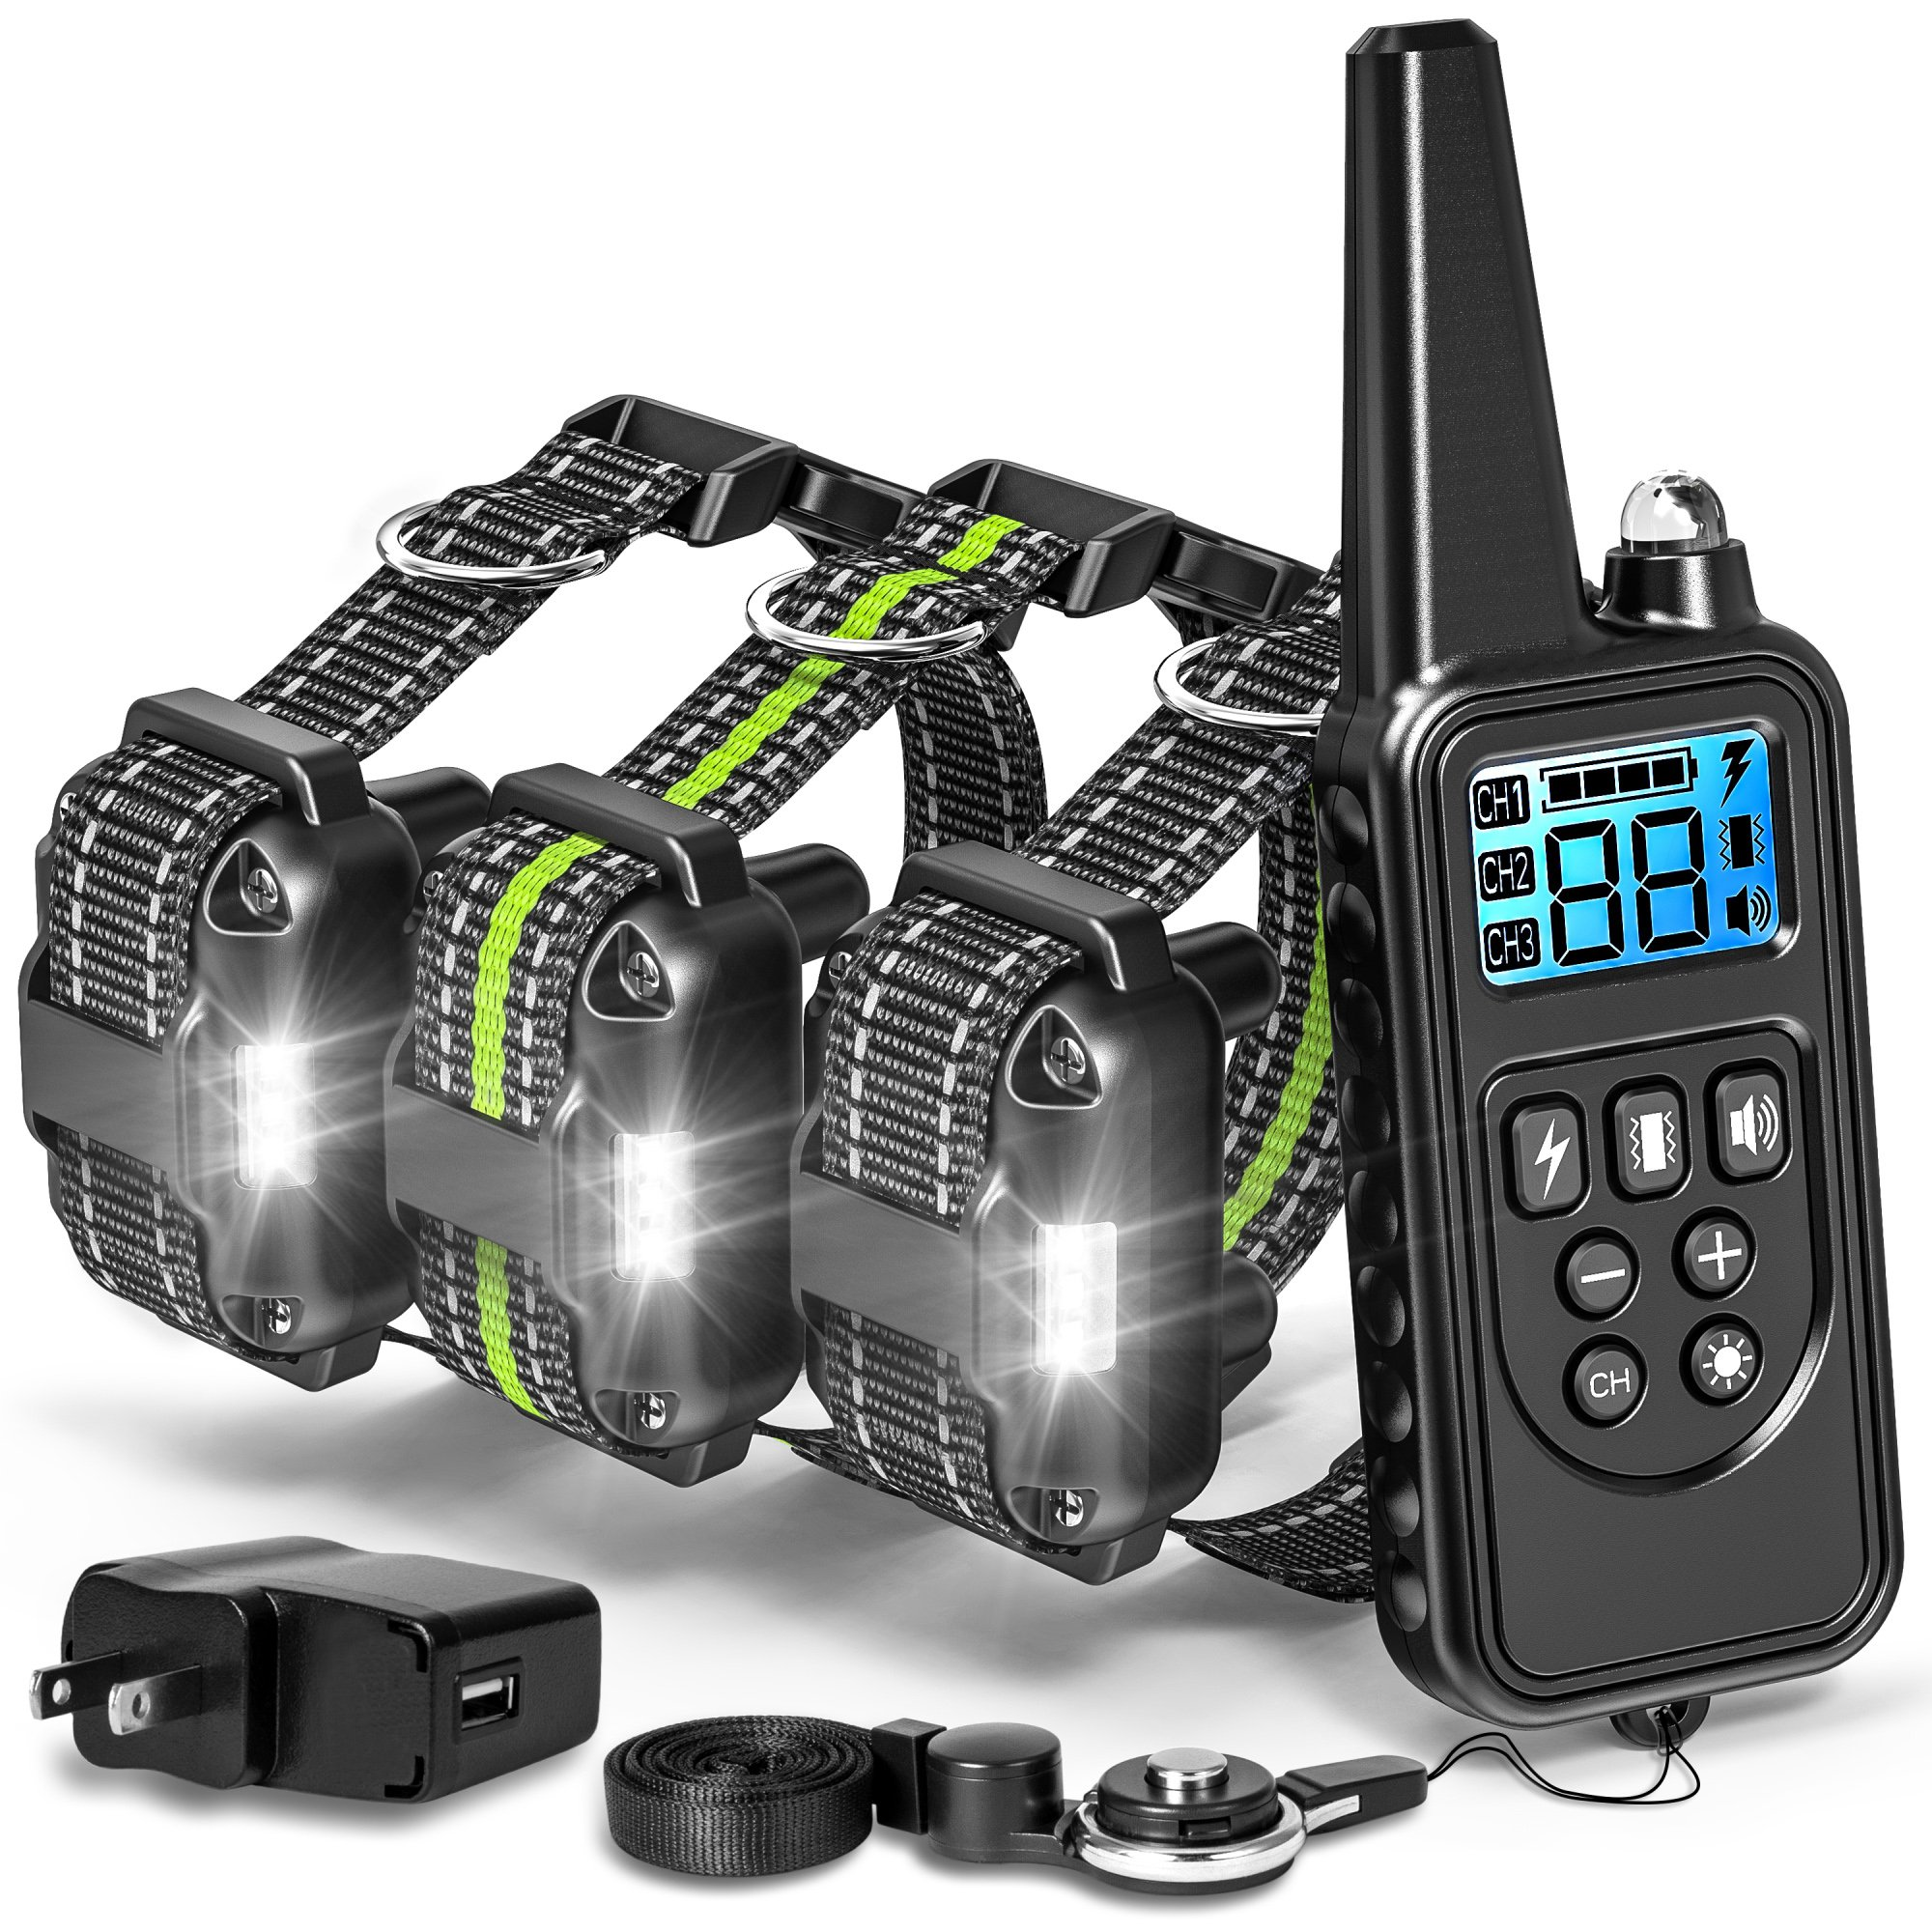 Shock Collar for Dogs with Remote, Range 865 Yards Dog Training Collars for Large Medium Small Dogs Breed 4 Modes Light Beep Vibration Shock, Waterproof and Rechargeable Dog Shock Collar for 3 dogs